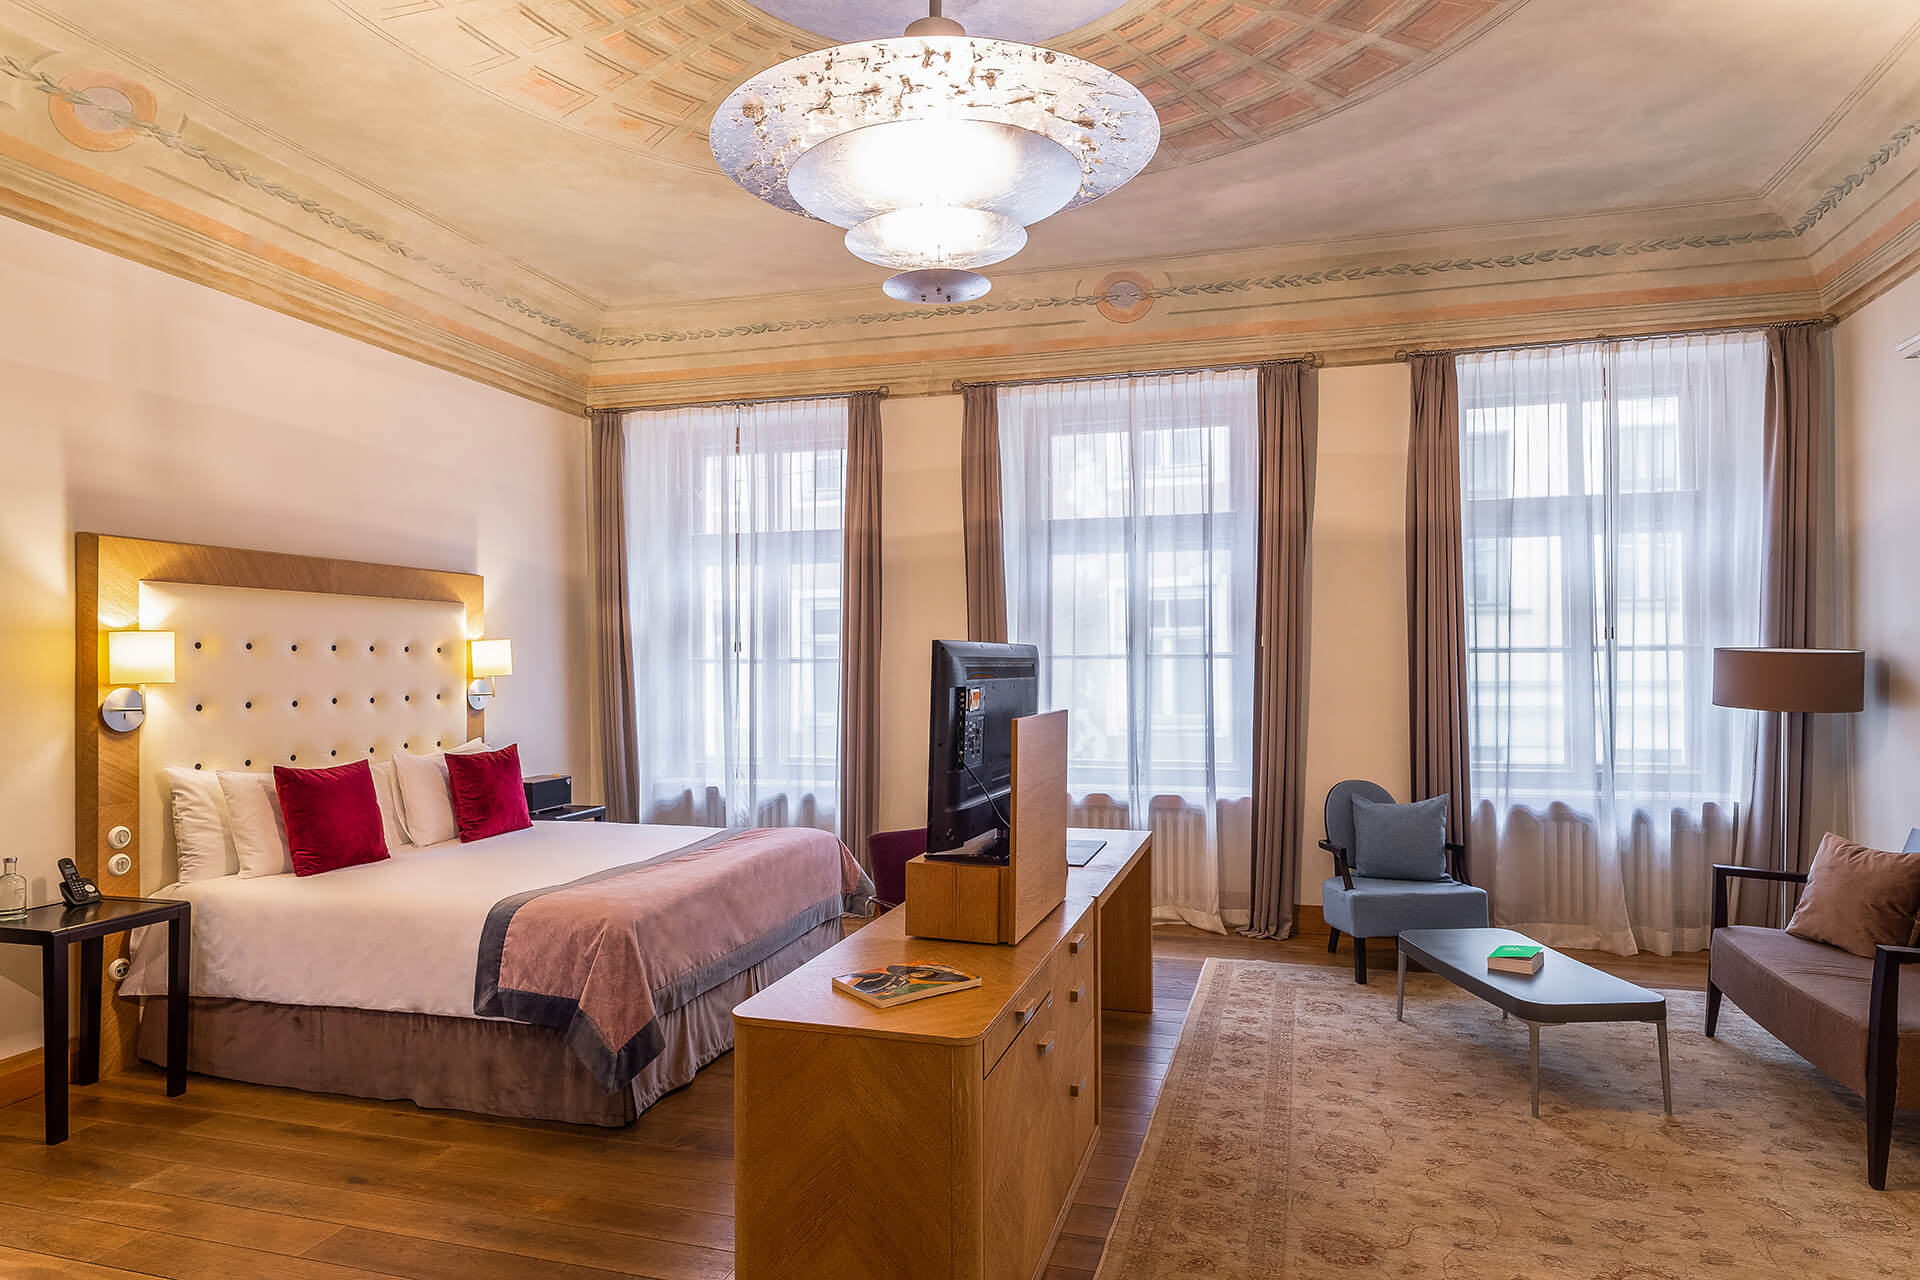 Deluxe Suite at the Dome Hotel in Riga, Latvia